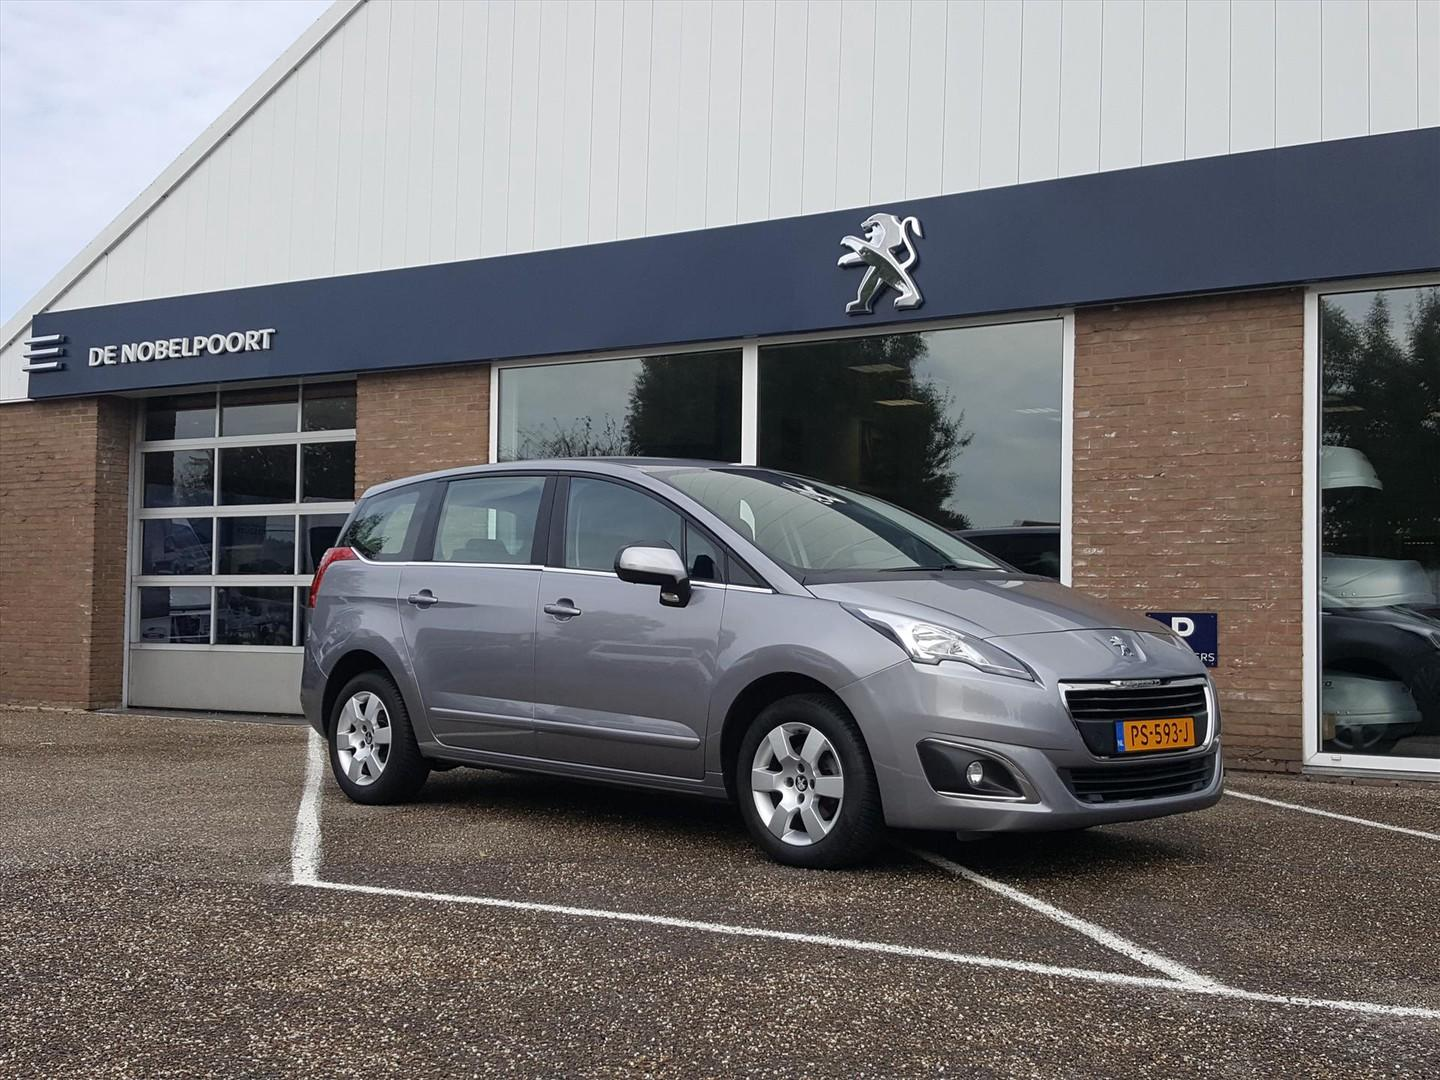 Peugeot 5008 1.6 hdif 7persoons cruise&climate control navi bt lm-velg